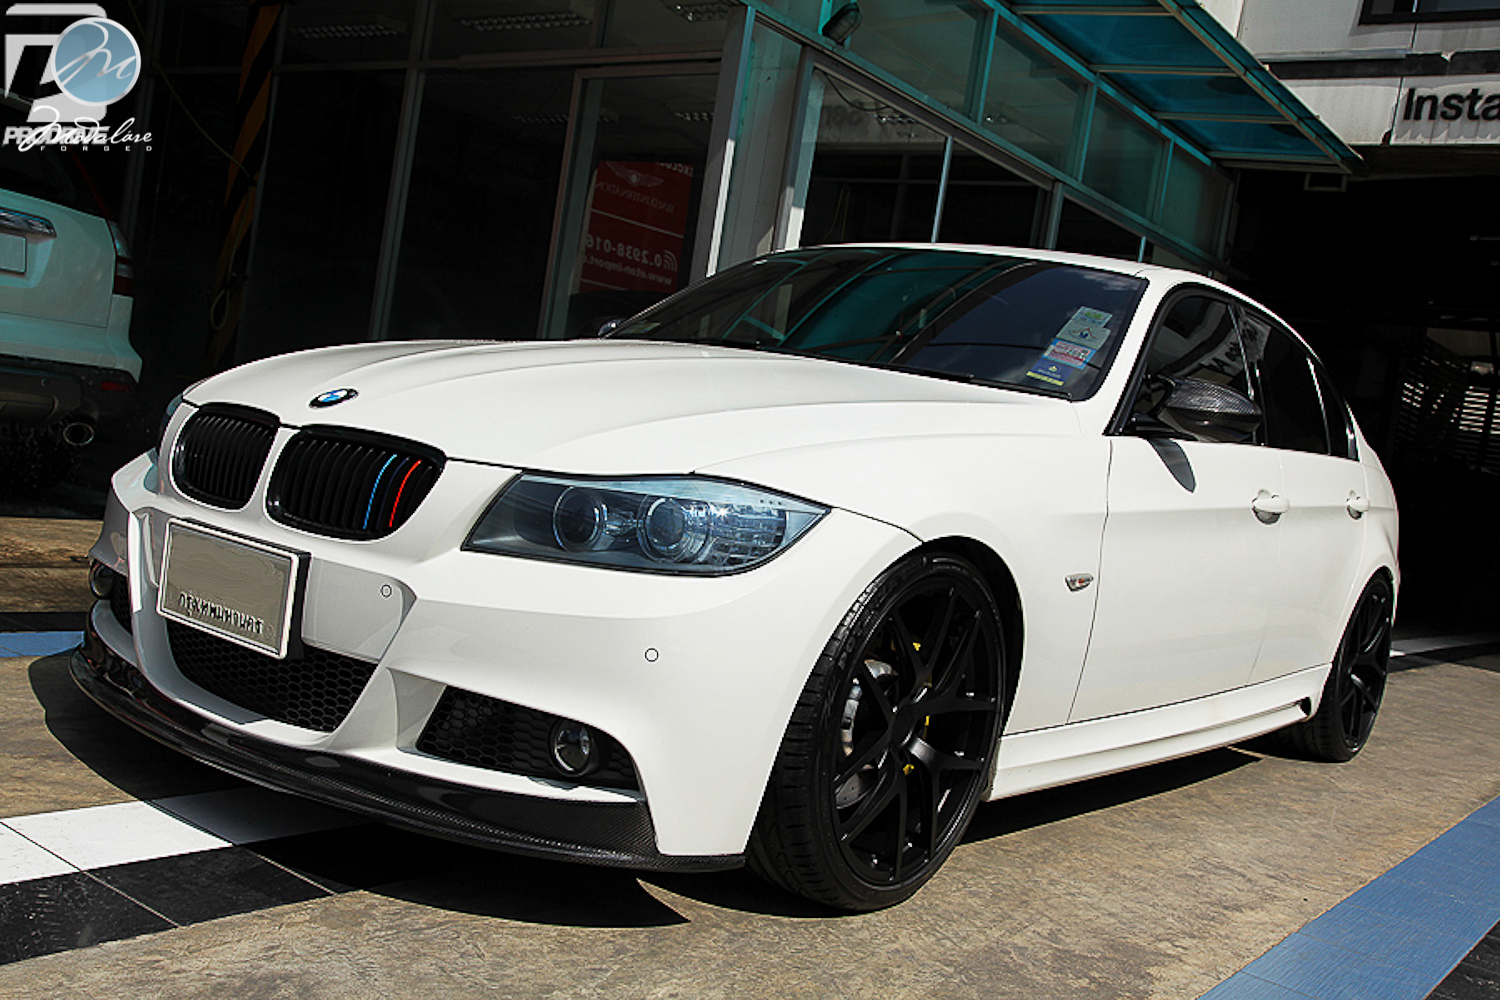 modulare wheels 19 b18 on prodrive shop 39 s bmw e90 lci. Black Bedroom Furniture Sets. Home Design Ideas